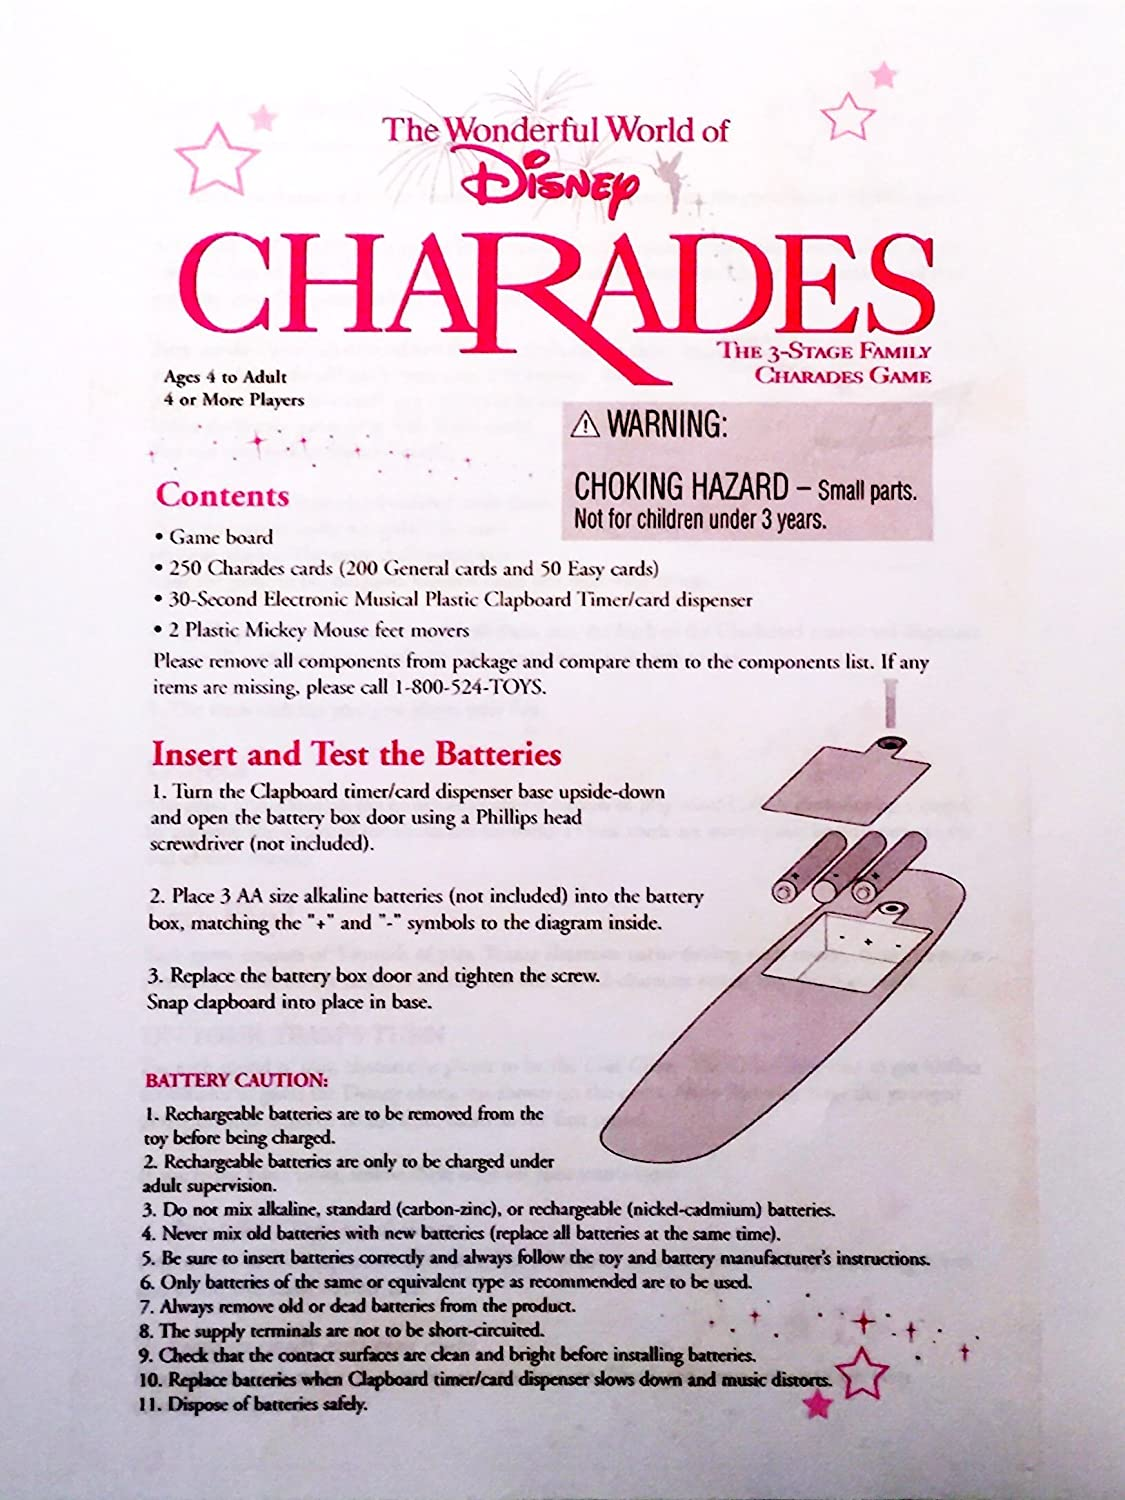 The Wonderful World Of Disney Charades By Mattel Toys Alkaline Battery Diagram Games